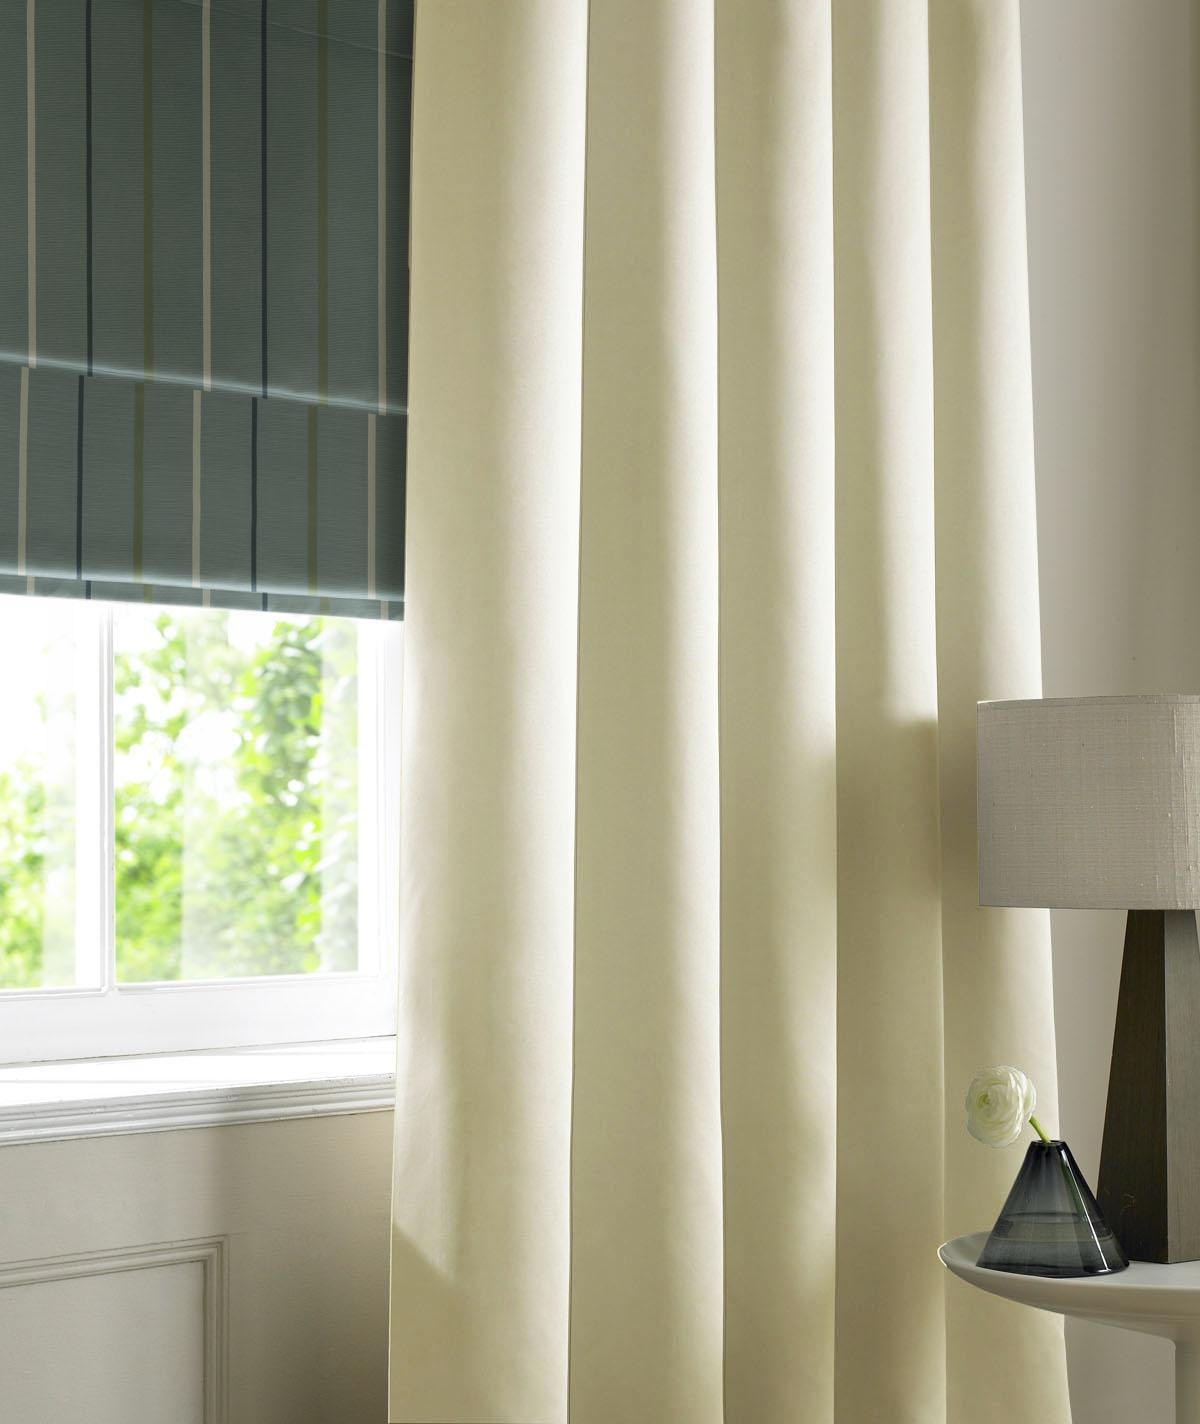 Stockists of Ivory Satin Made to Measure Curtains